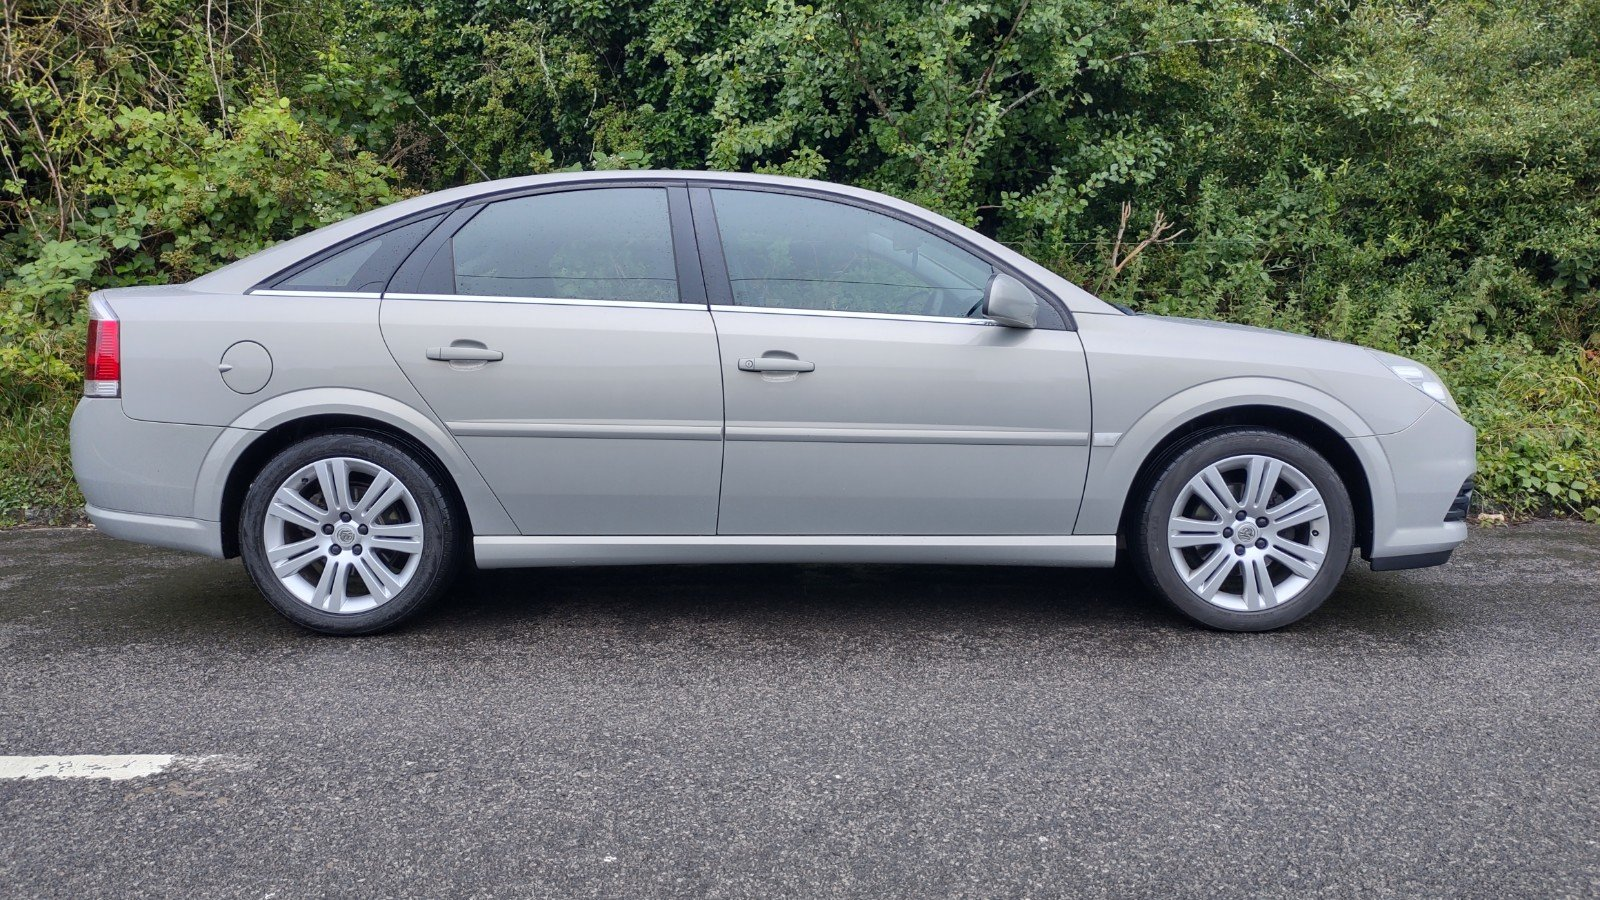 2007 Vectra Exclusive, technician owned, for sale For Sale (picture 1 of 5)